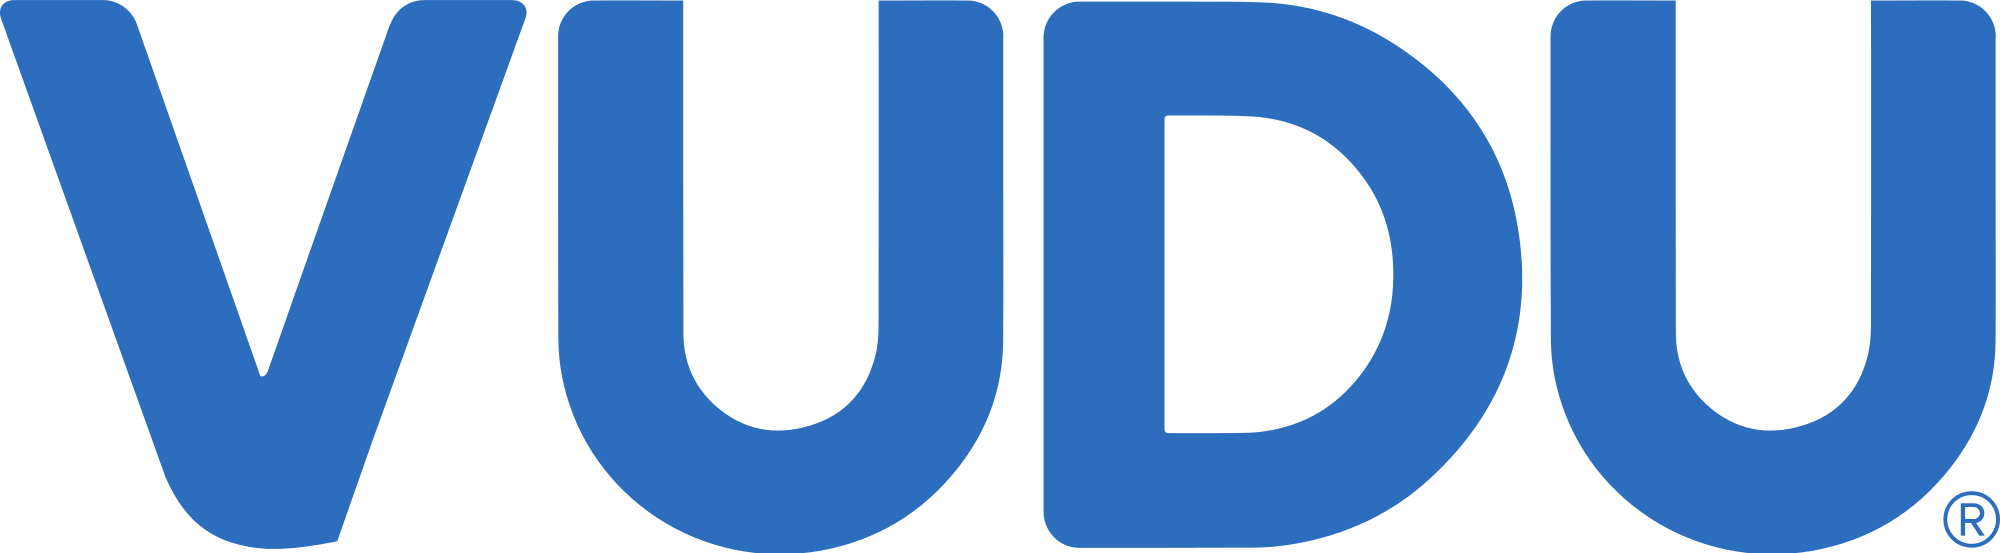 VUDU logo ACQUITTED BY FAITH